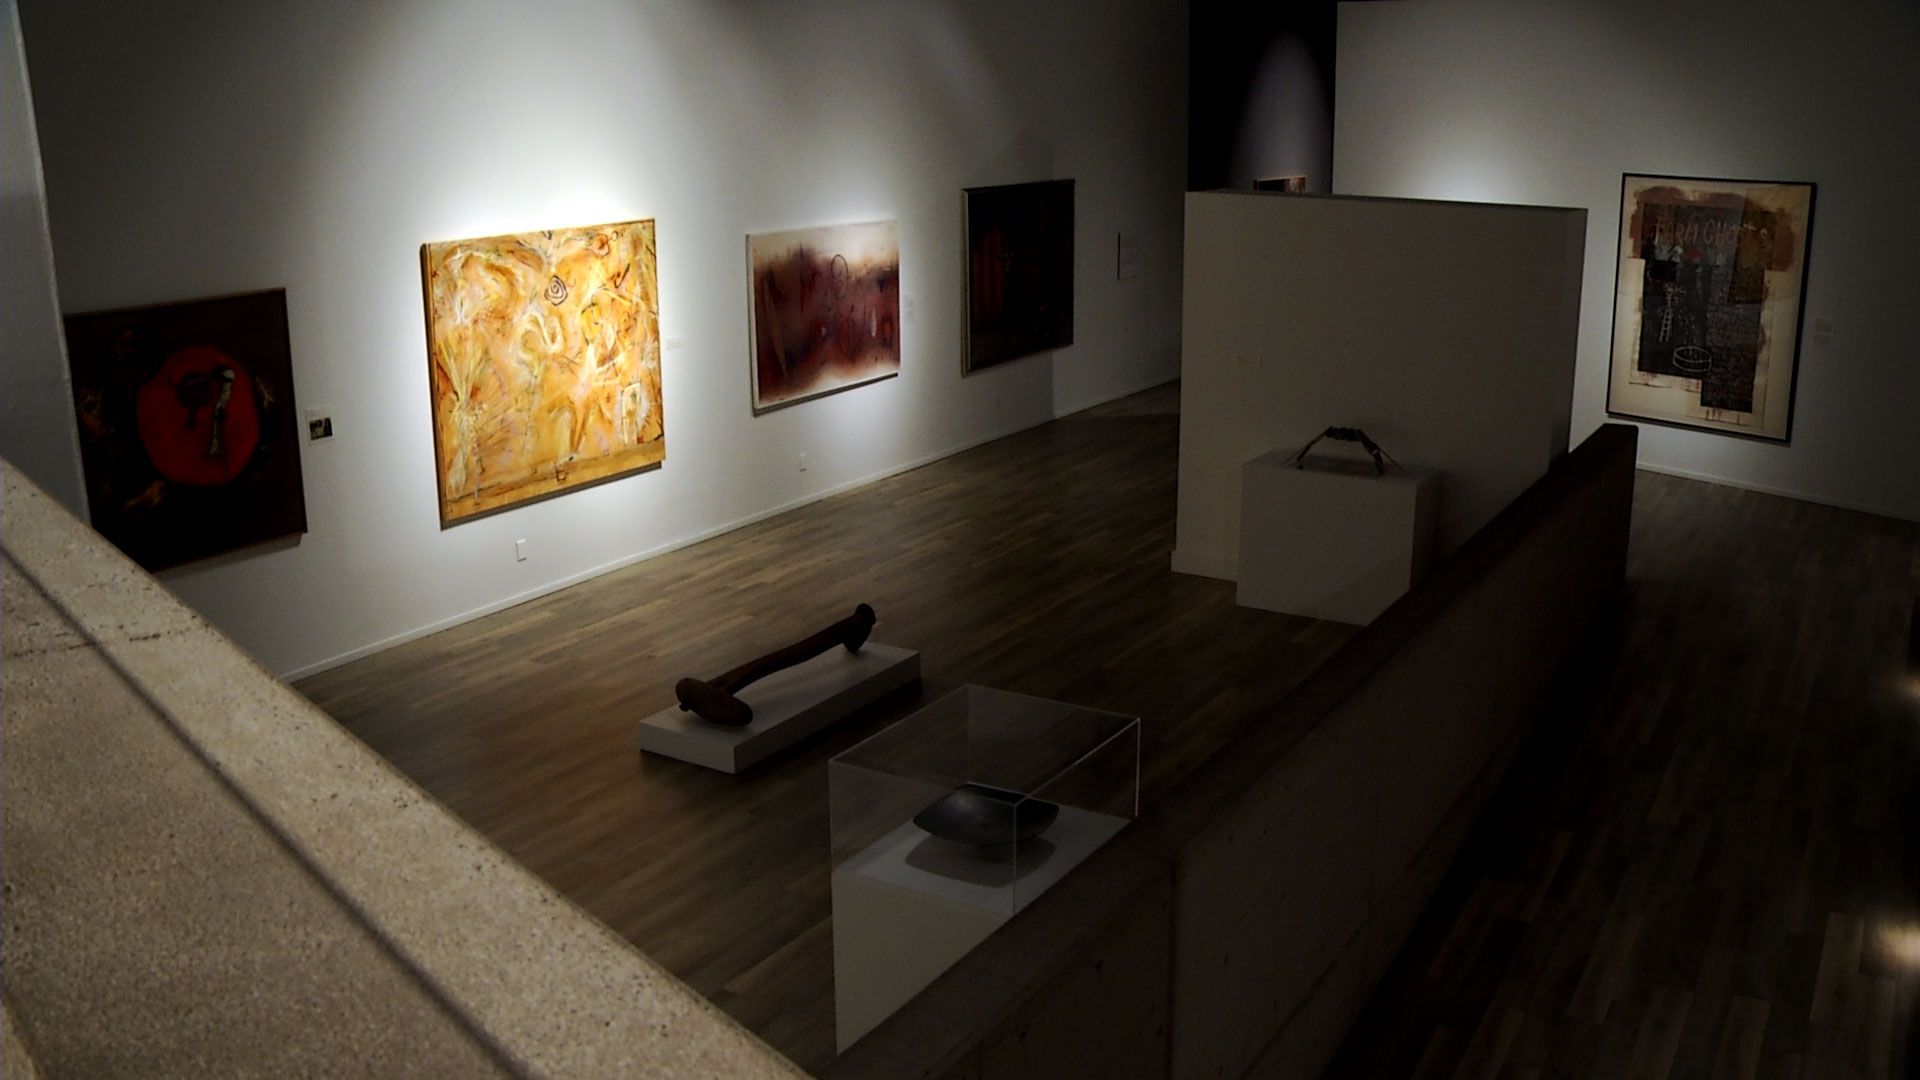 An empty gallery at the Tucson Museum of Art in May 2020. The museum closed to visitors as a result of the COVID-19 pandemic.